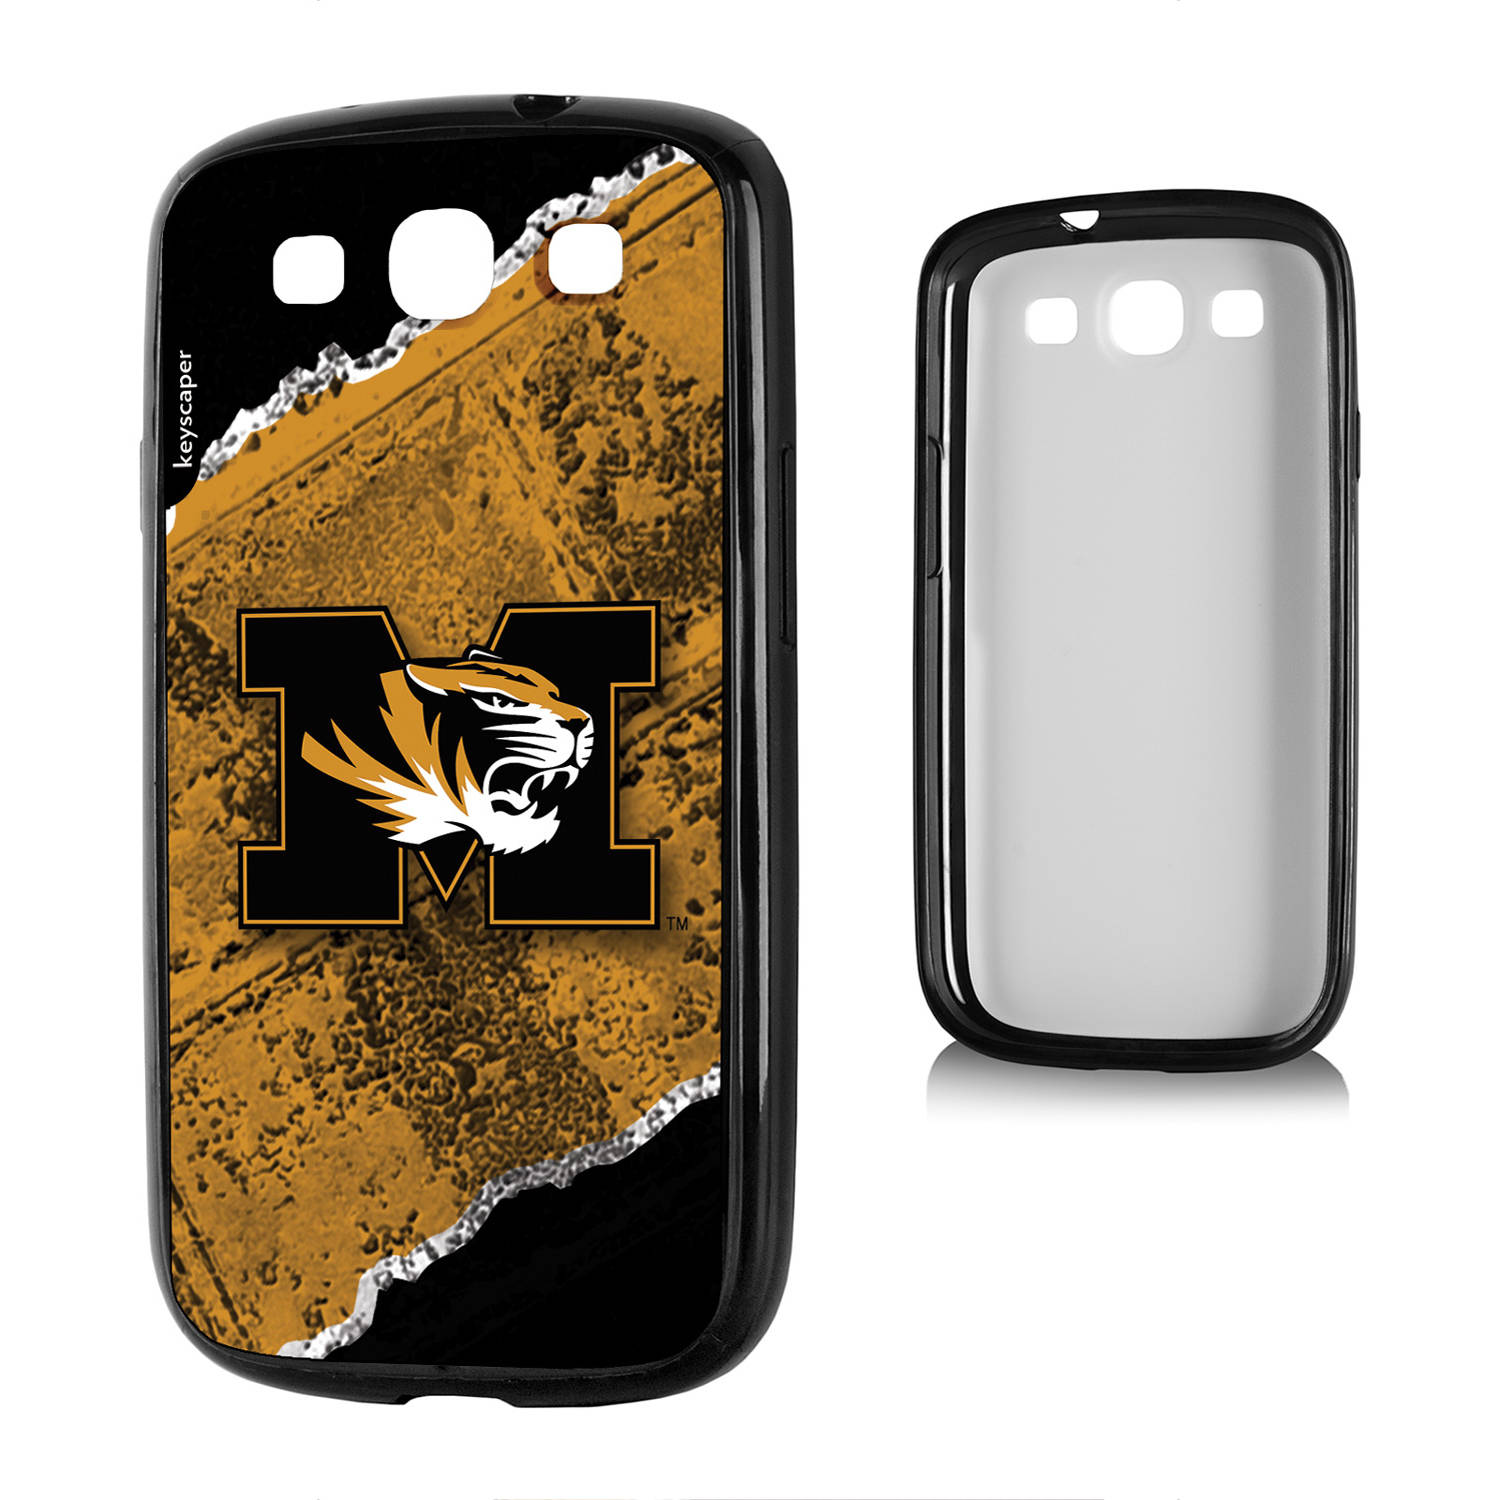 Missouri Tigers Galaxy S3 Bumper Case